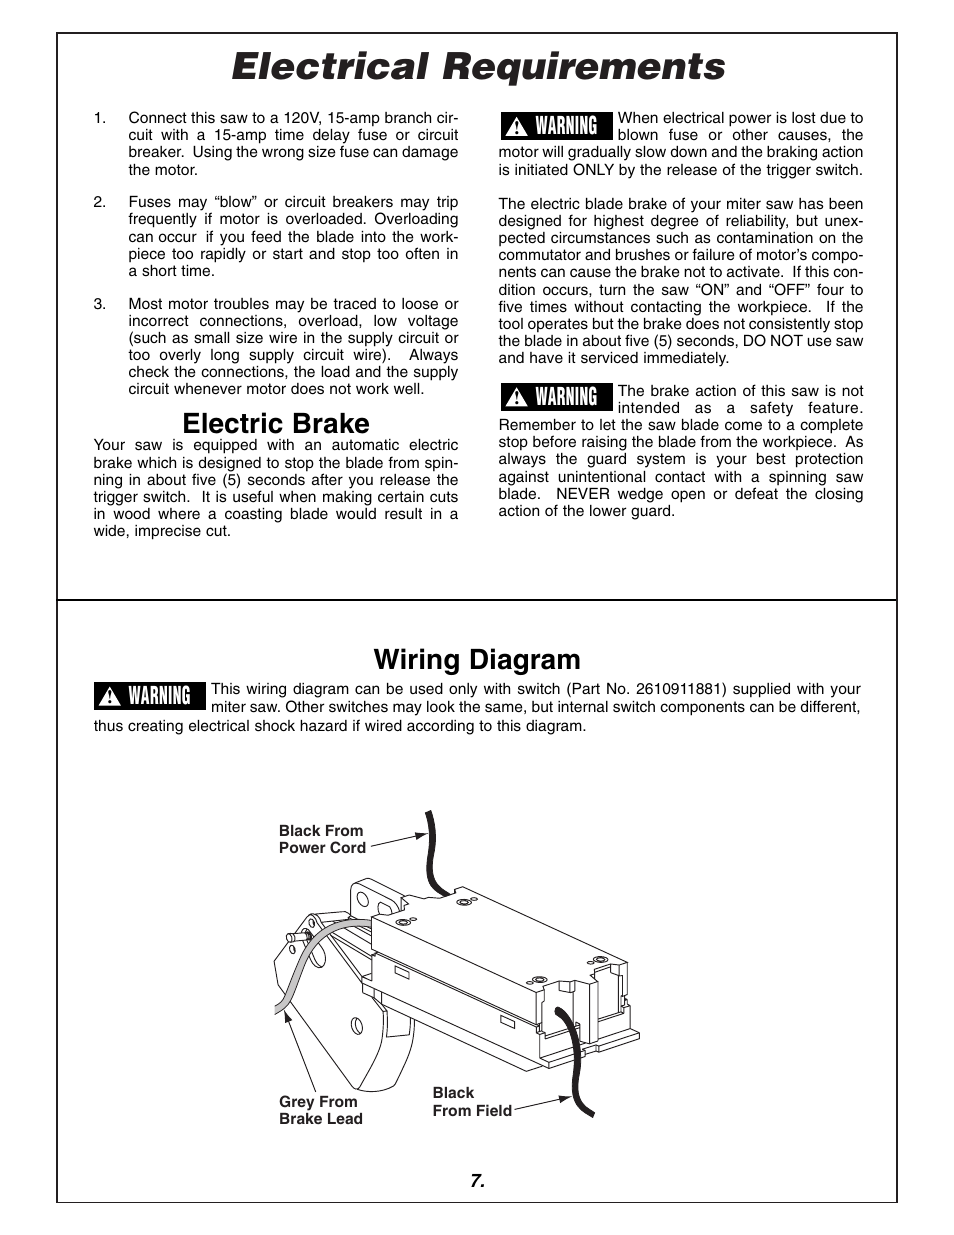 7 Lead Motor Wiring Electrical Requirements Electric Brake Diagram Bosch 3915 User Manual Page 104